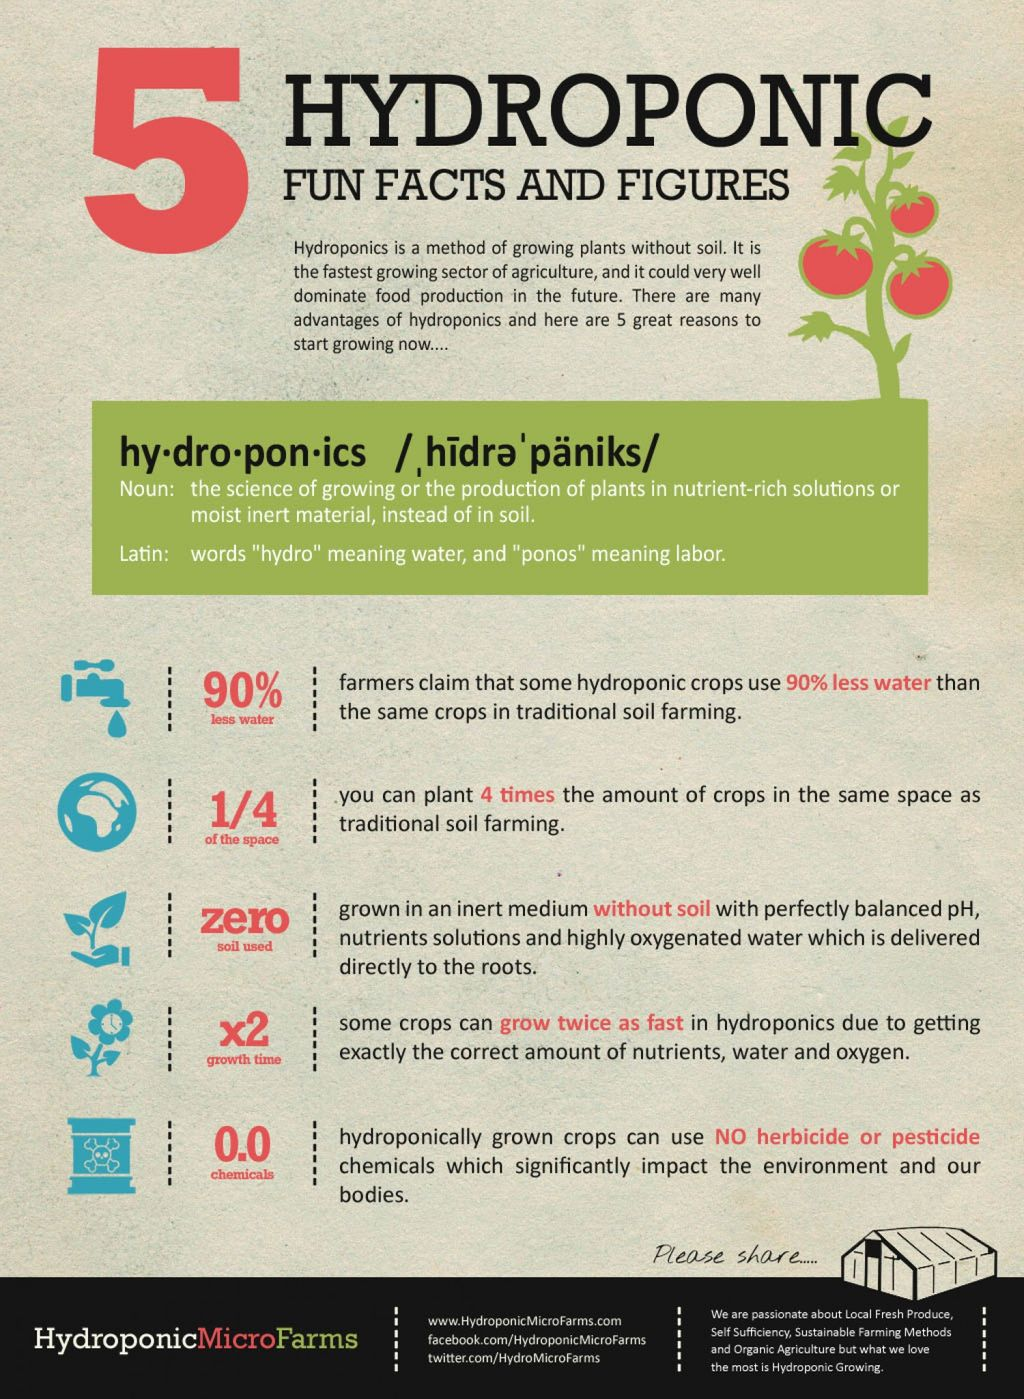 5 Hydroponic Fun Facts and Figures